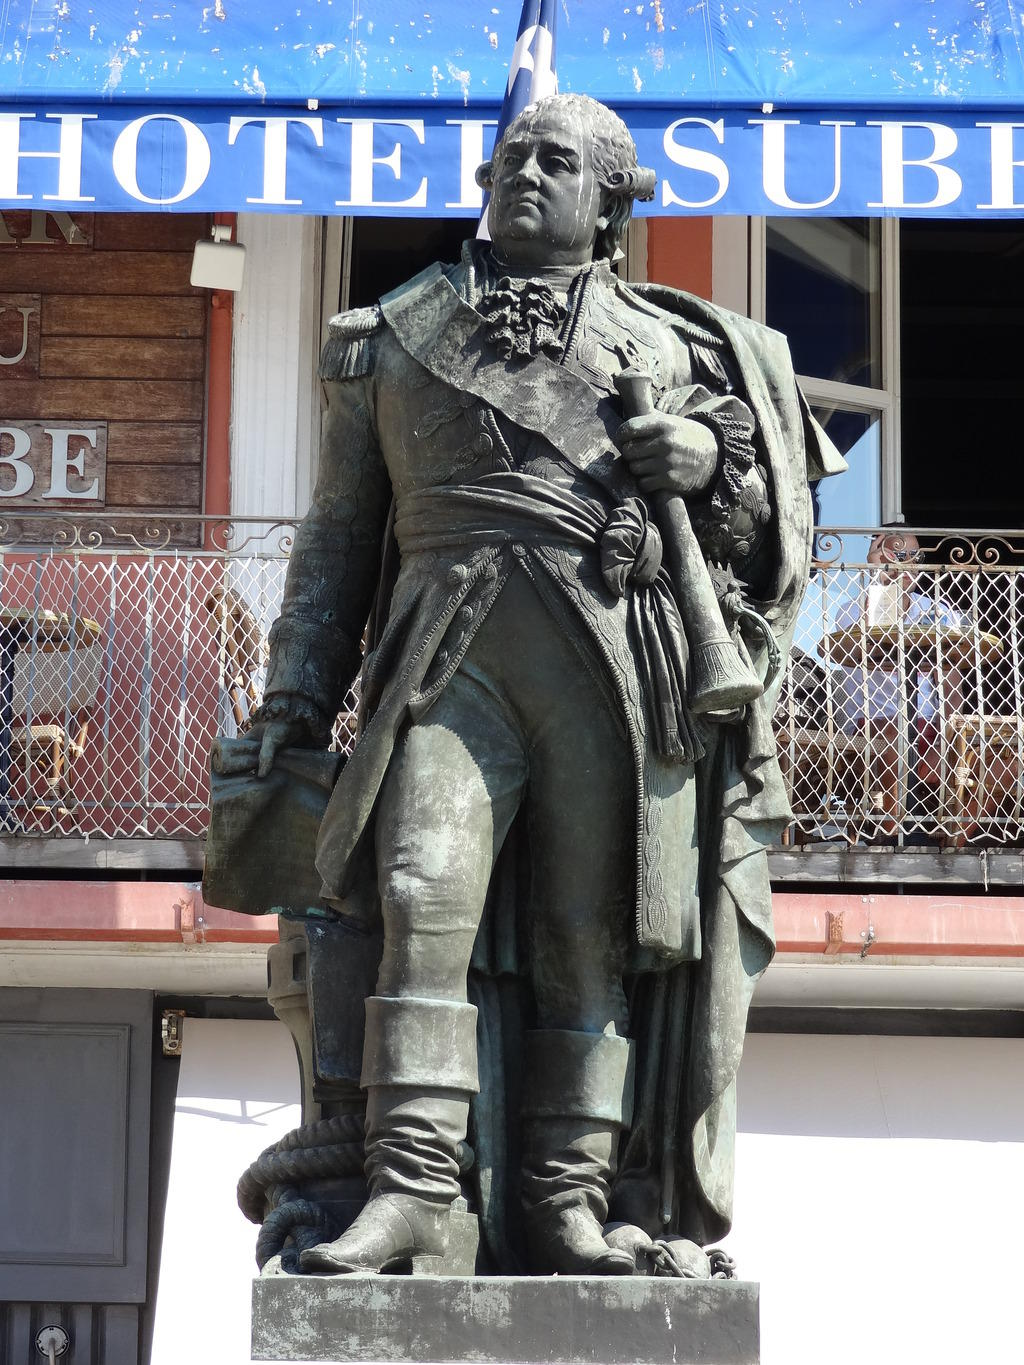 Says monument statue of the bailli de Suffren, French Heritage monument to St tropez.